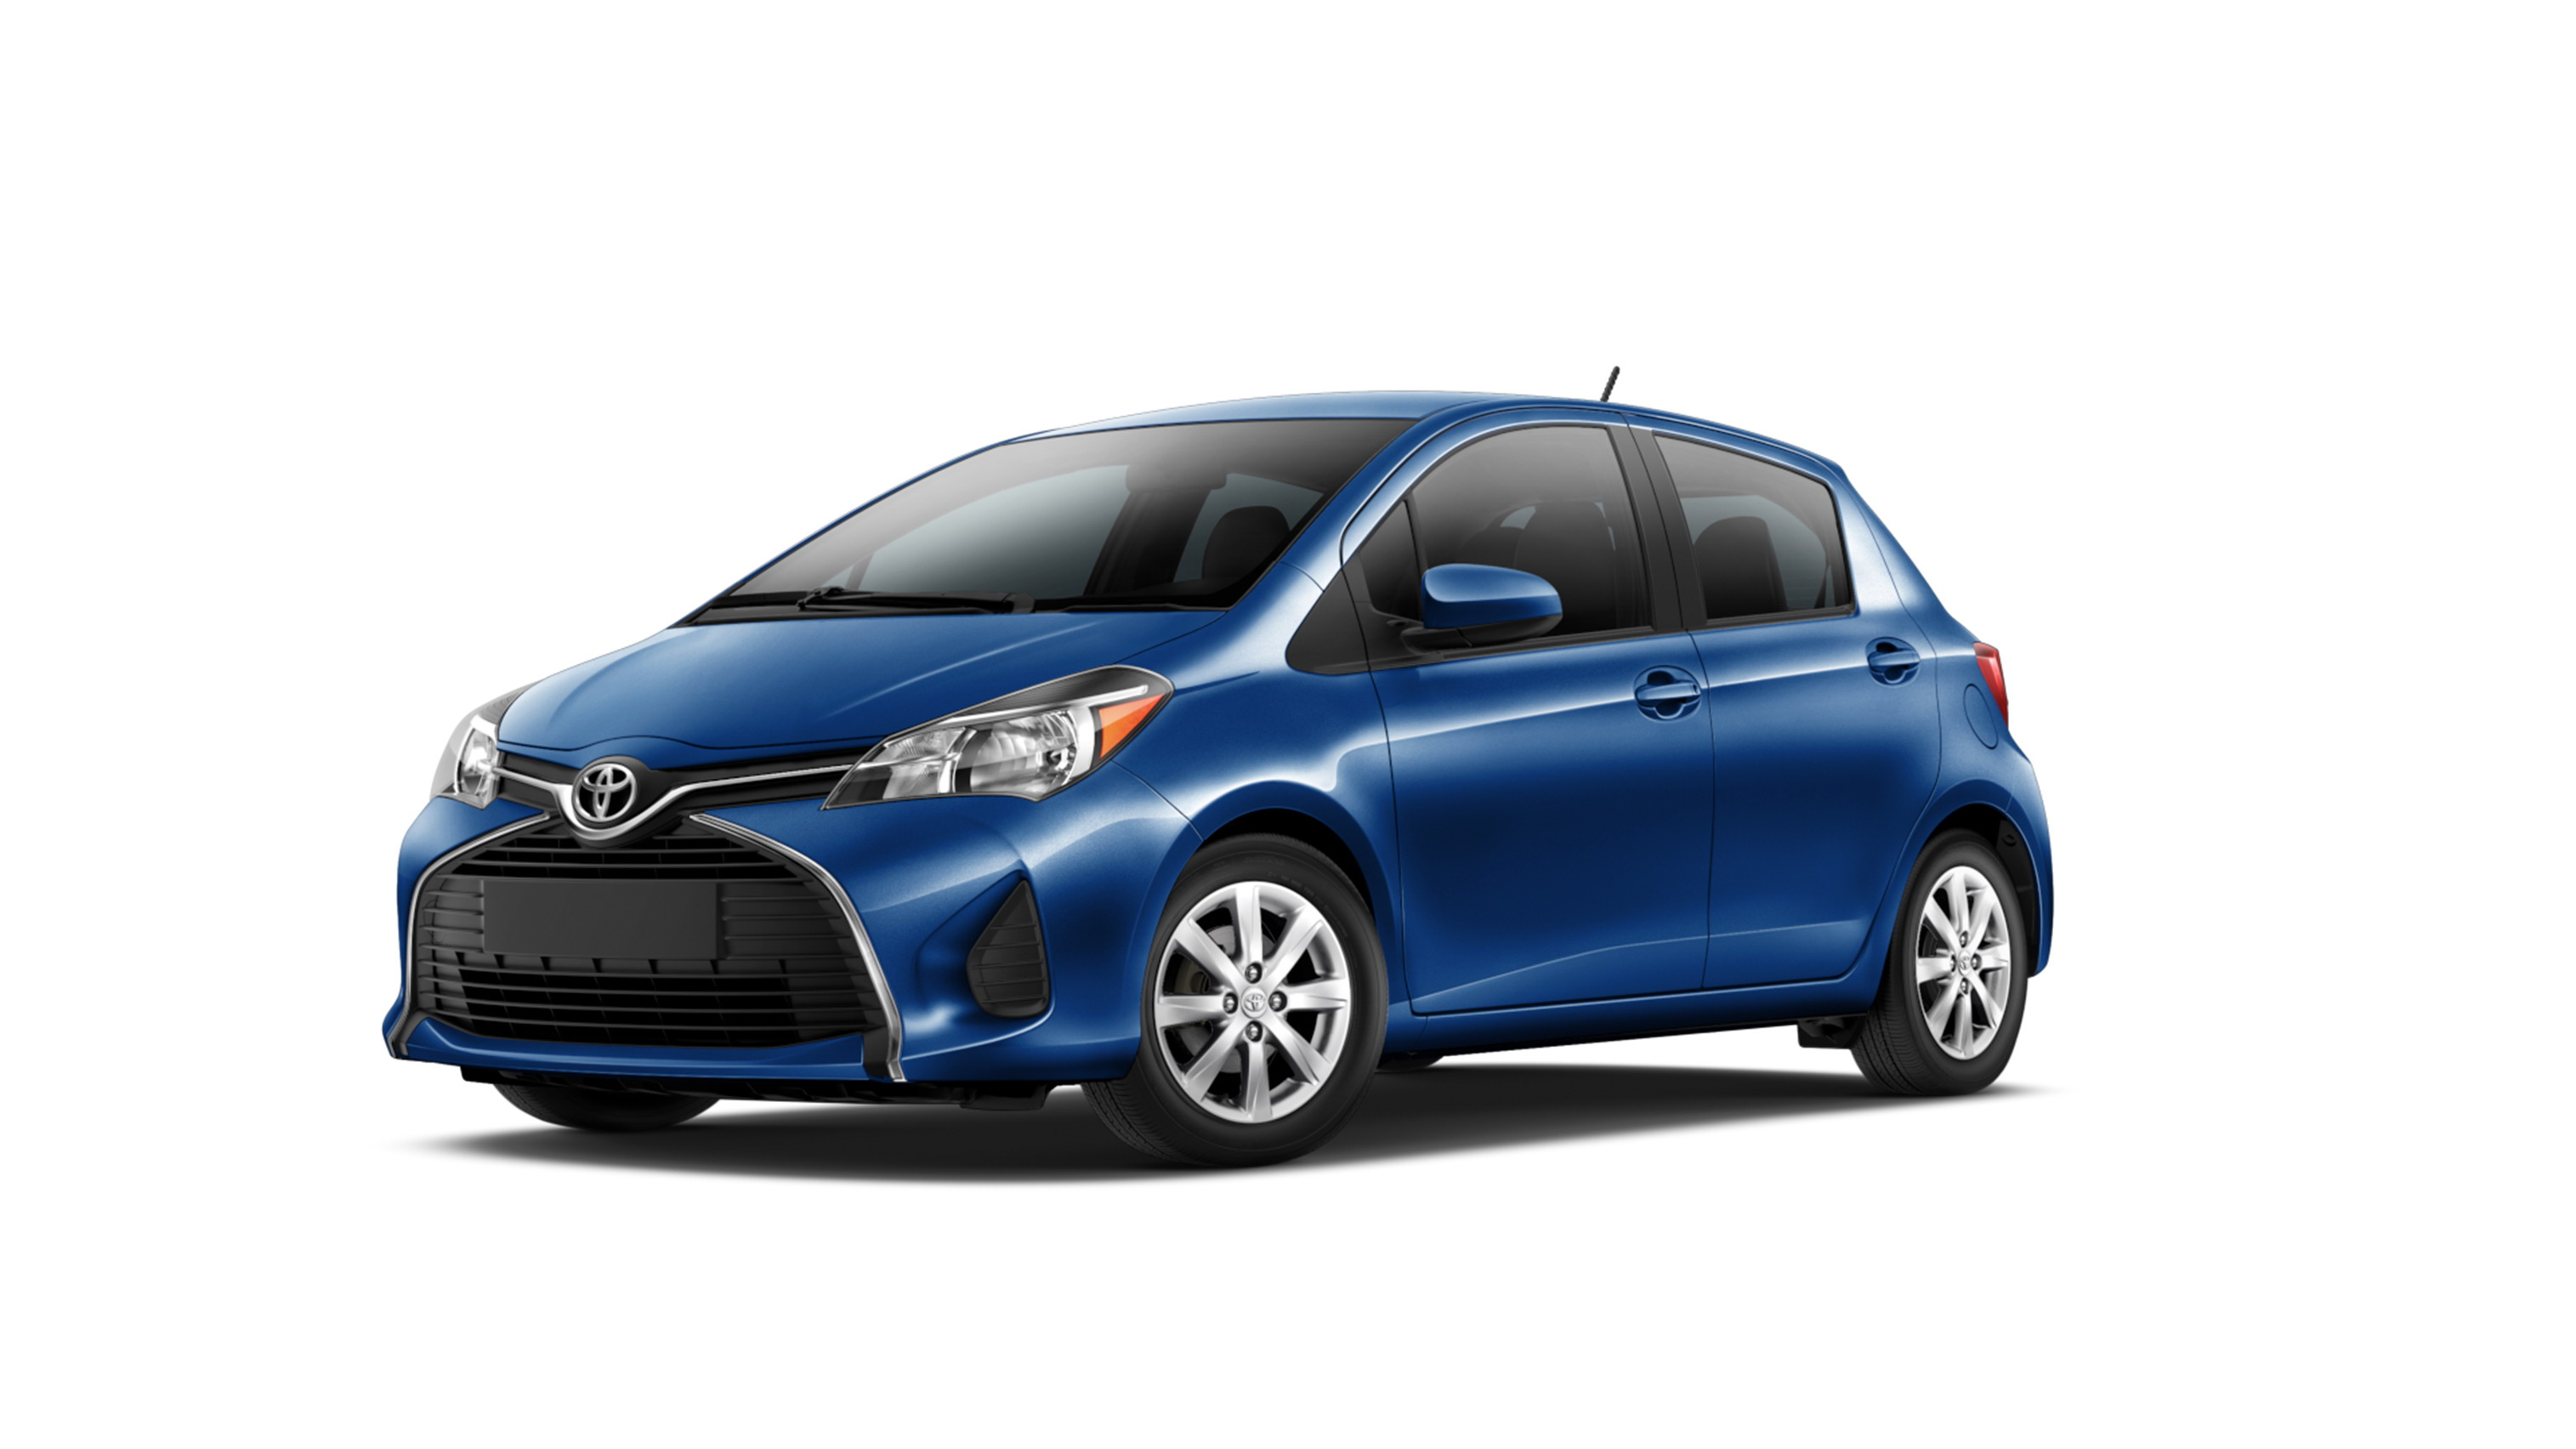 2015 toyota yaris review - top speed